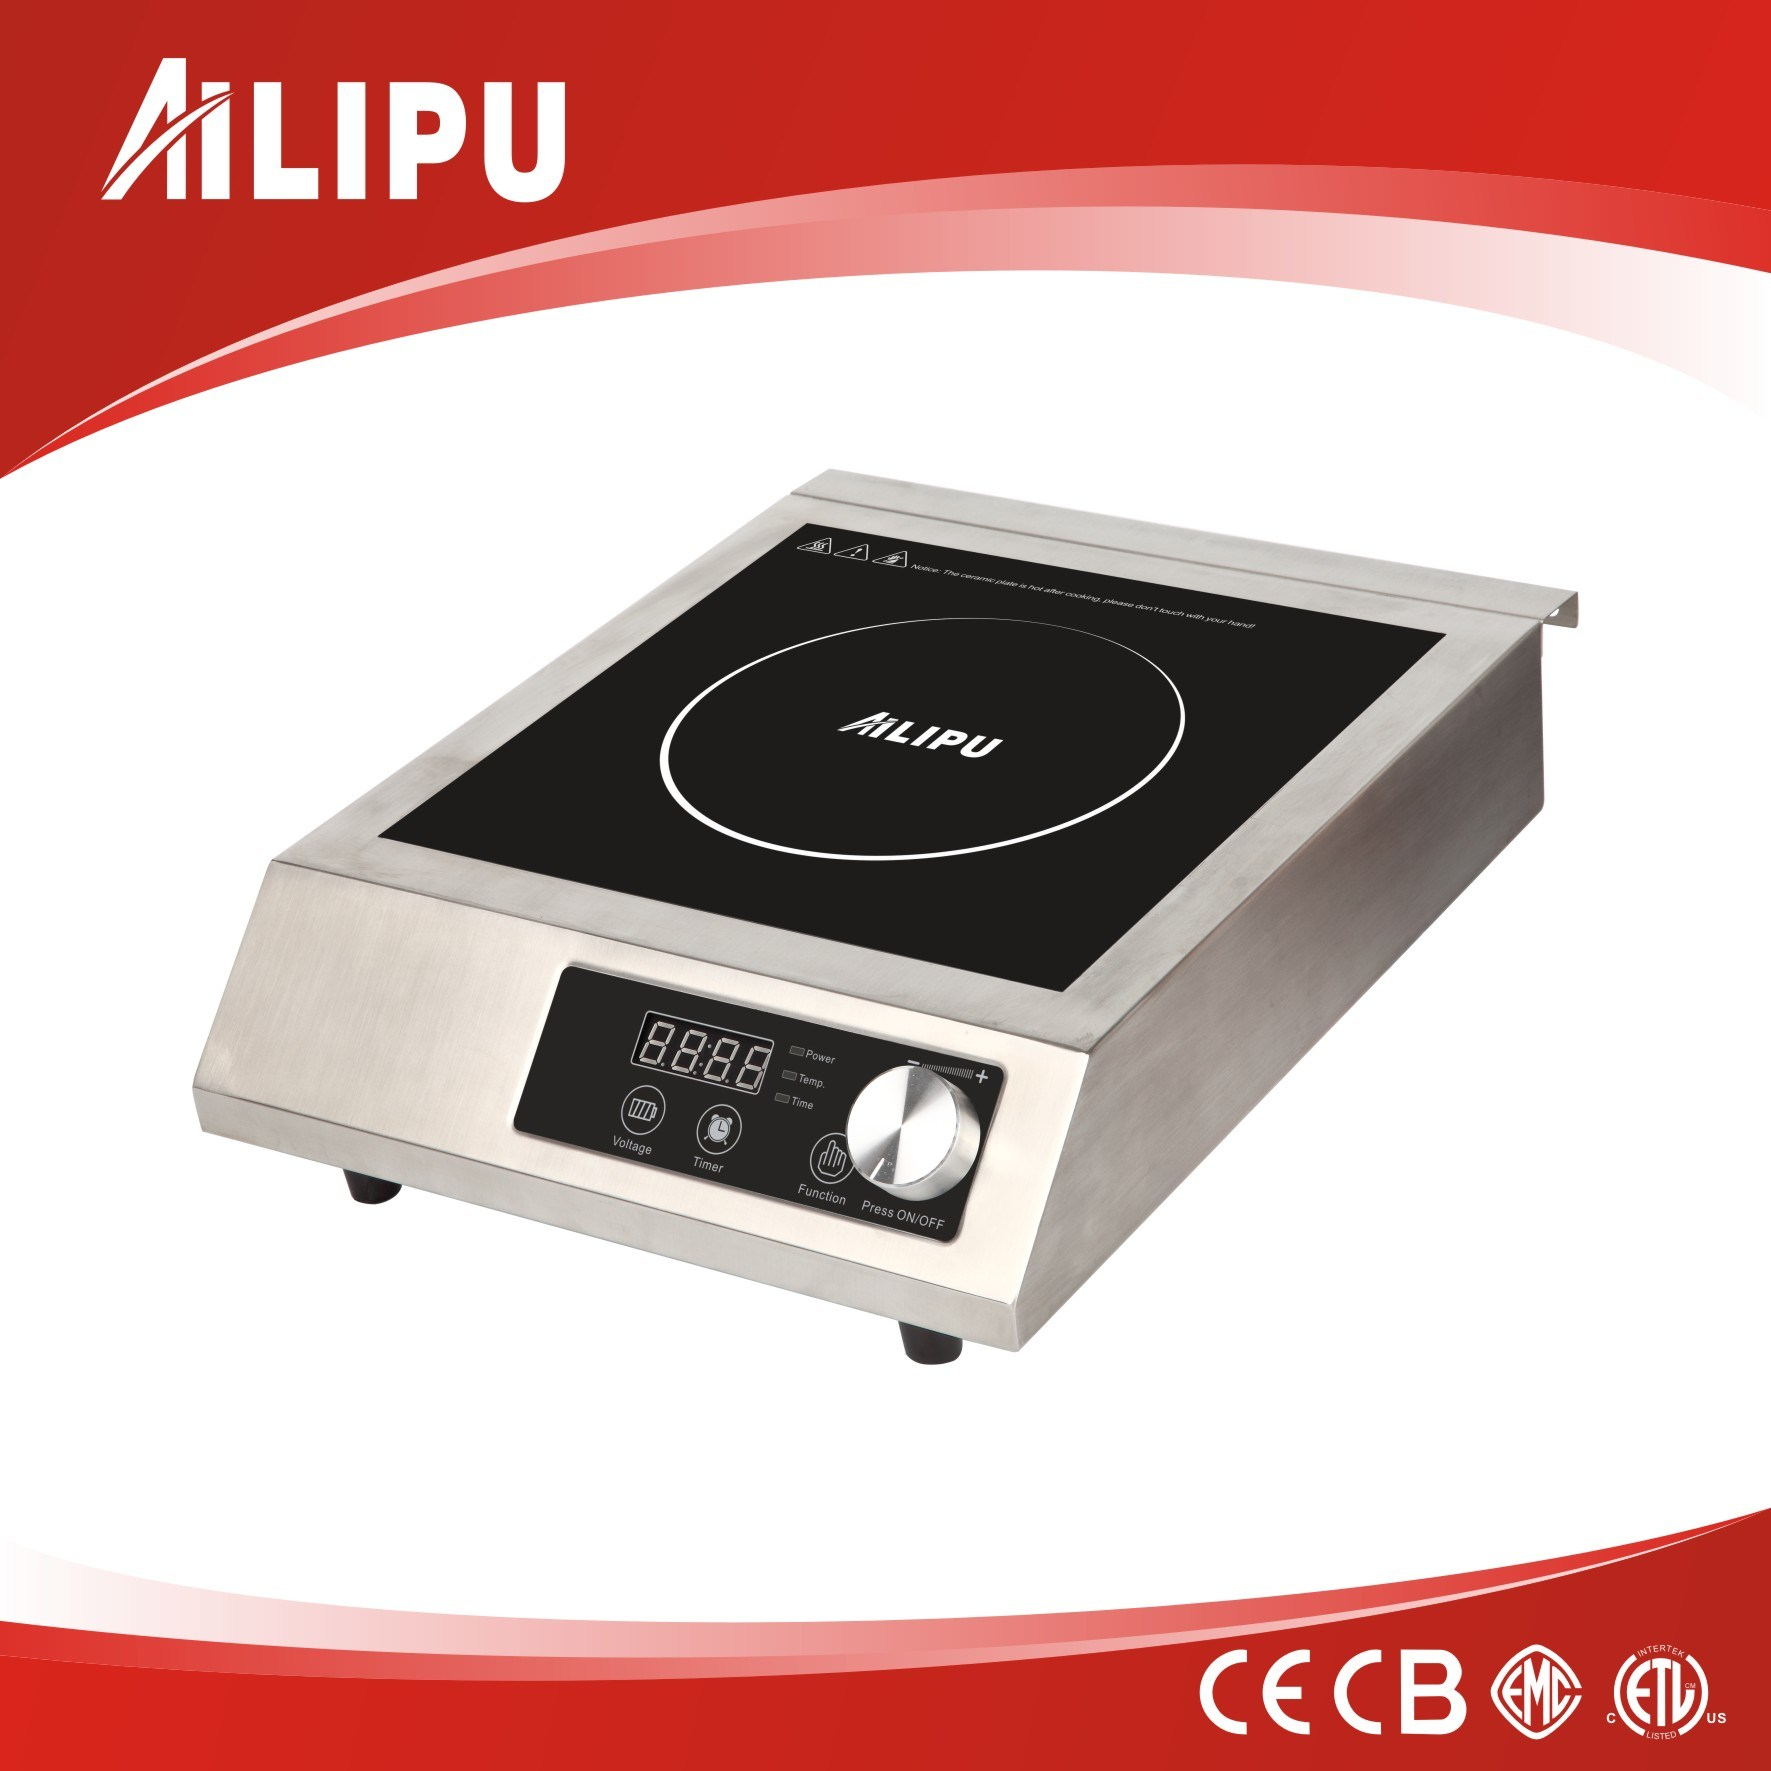 High Power 3500W Commercial Induction Cooker Model Sm-A80